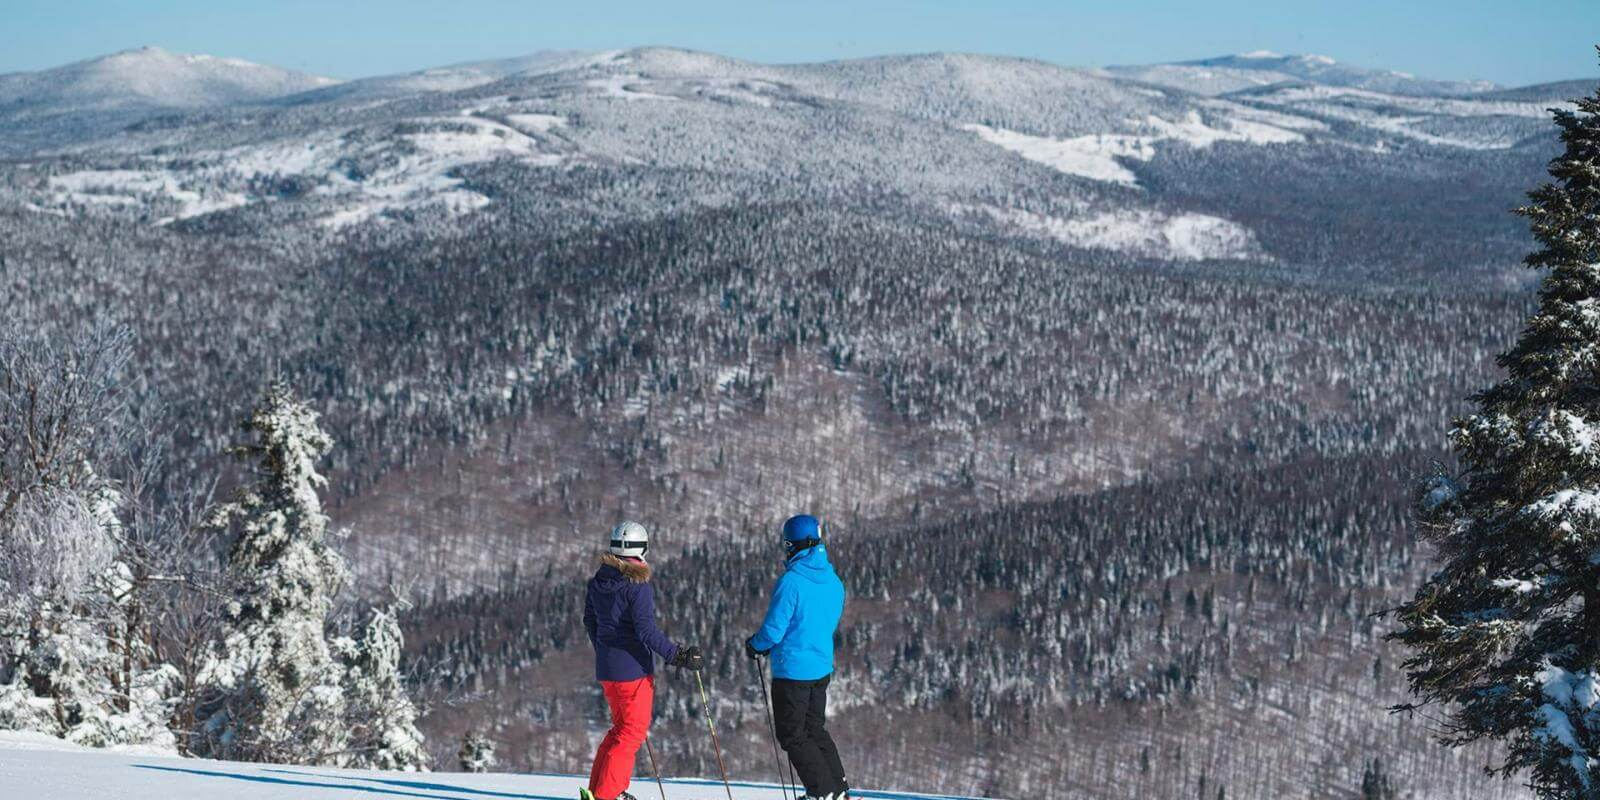 Two skiers observe the snow-capped mountains at the top of the Mont-Sainte-Anne alpine ski resort.